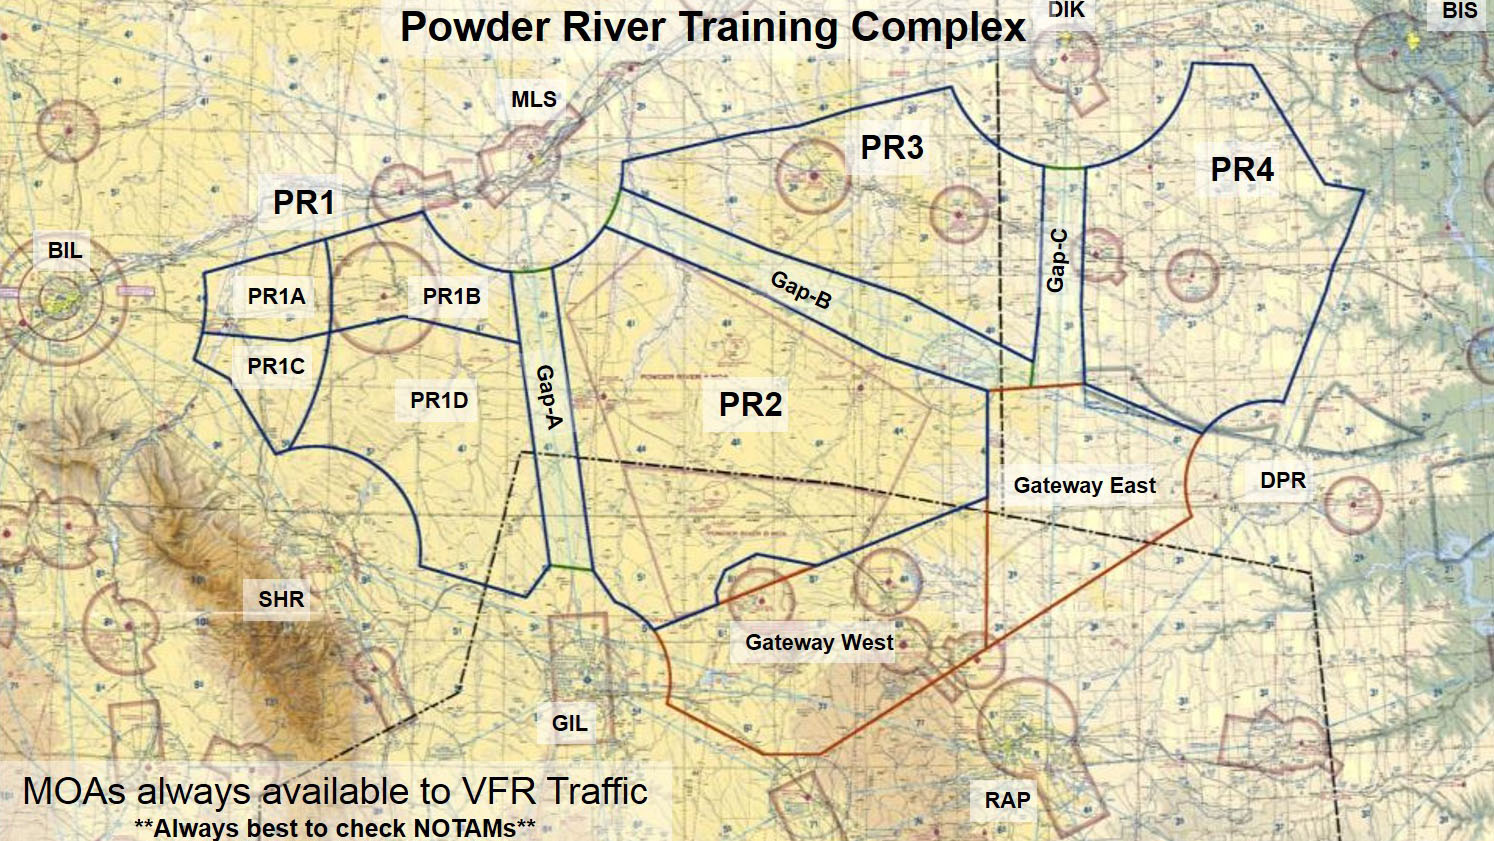 A large-force exercise named Combat Raider will take place March 14 to 16 in the Powder River Training Complex. Click to view larger image.